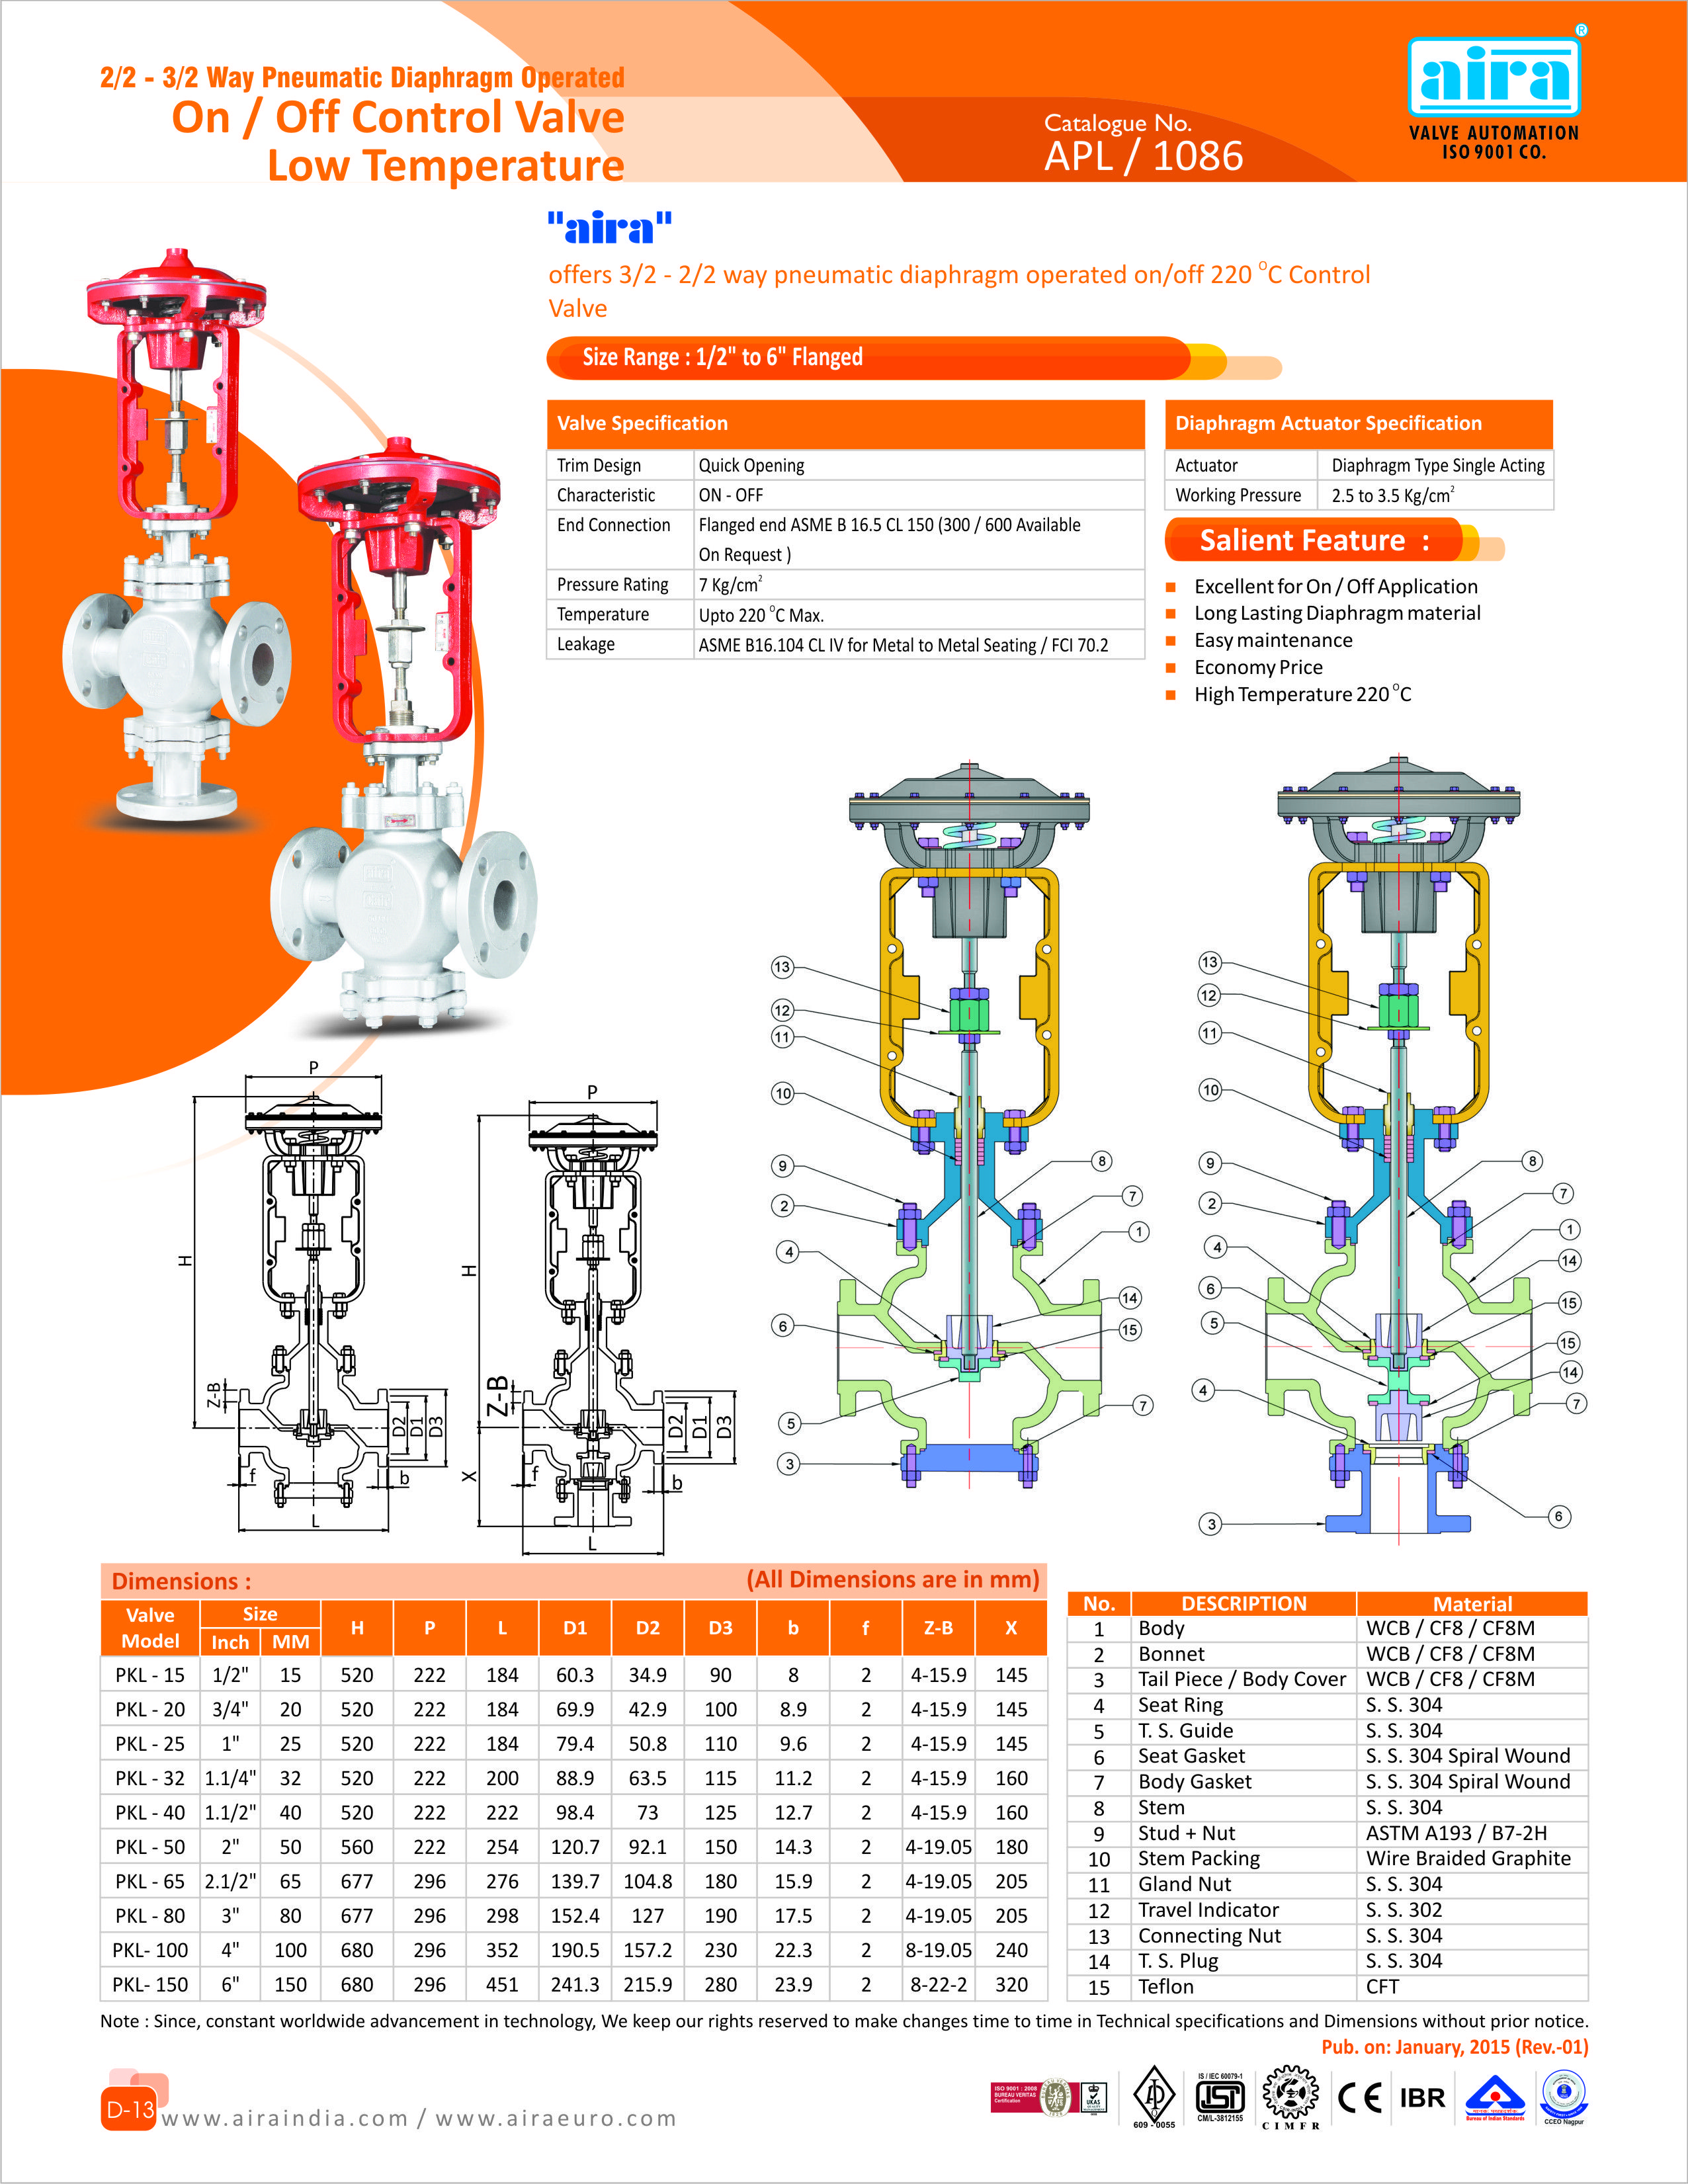 small resolution of 2 2 3 2 way pneumatic diaphragm operated on off control valve low temperature for more info visit now www airaindia com